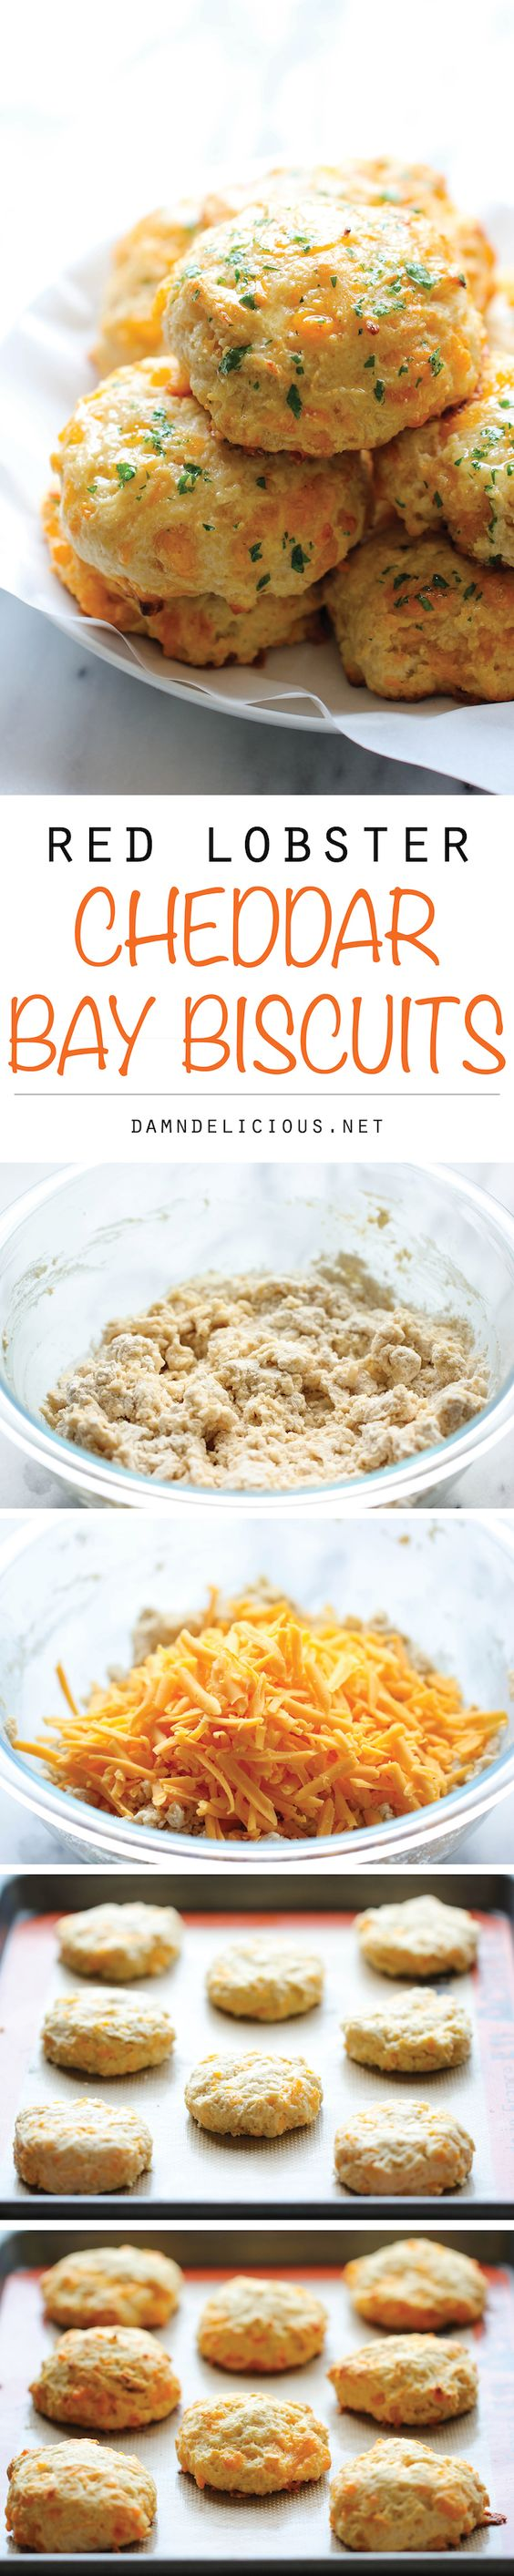 Red Lobster Cheddar Bay Biscuits—So excited to make these tasty biscuits at home!